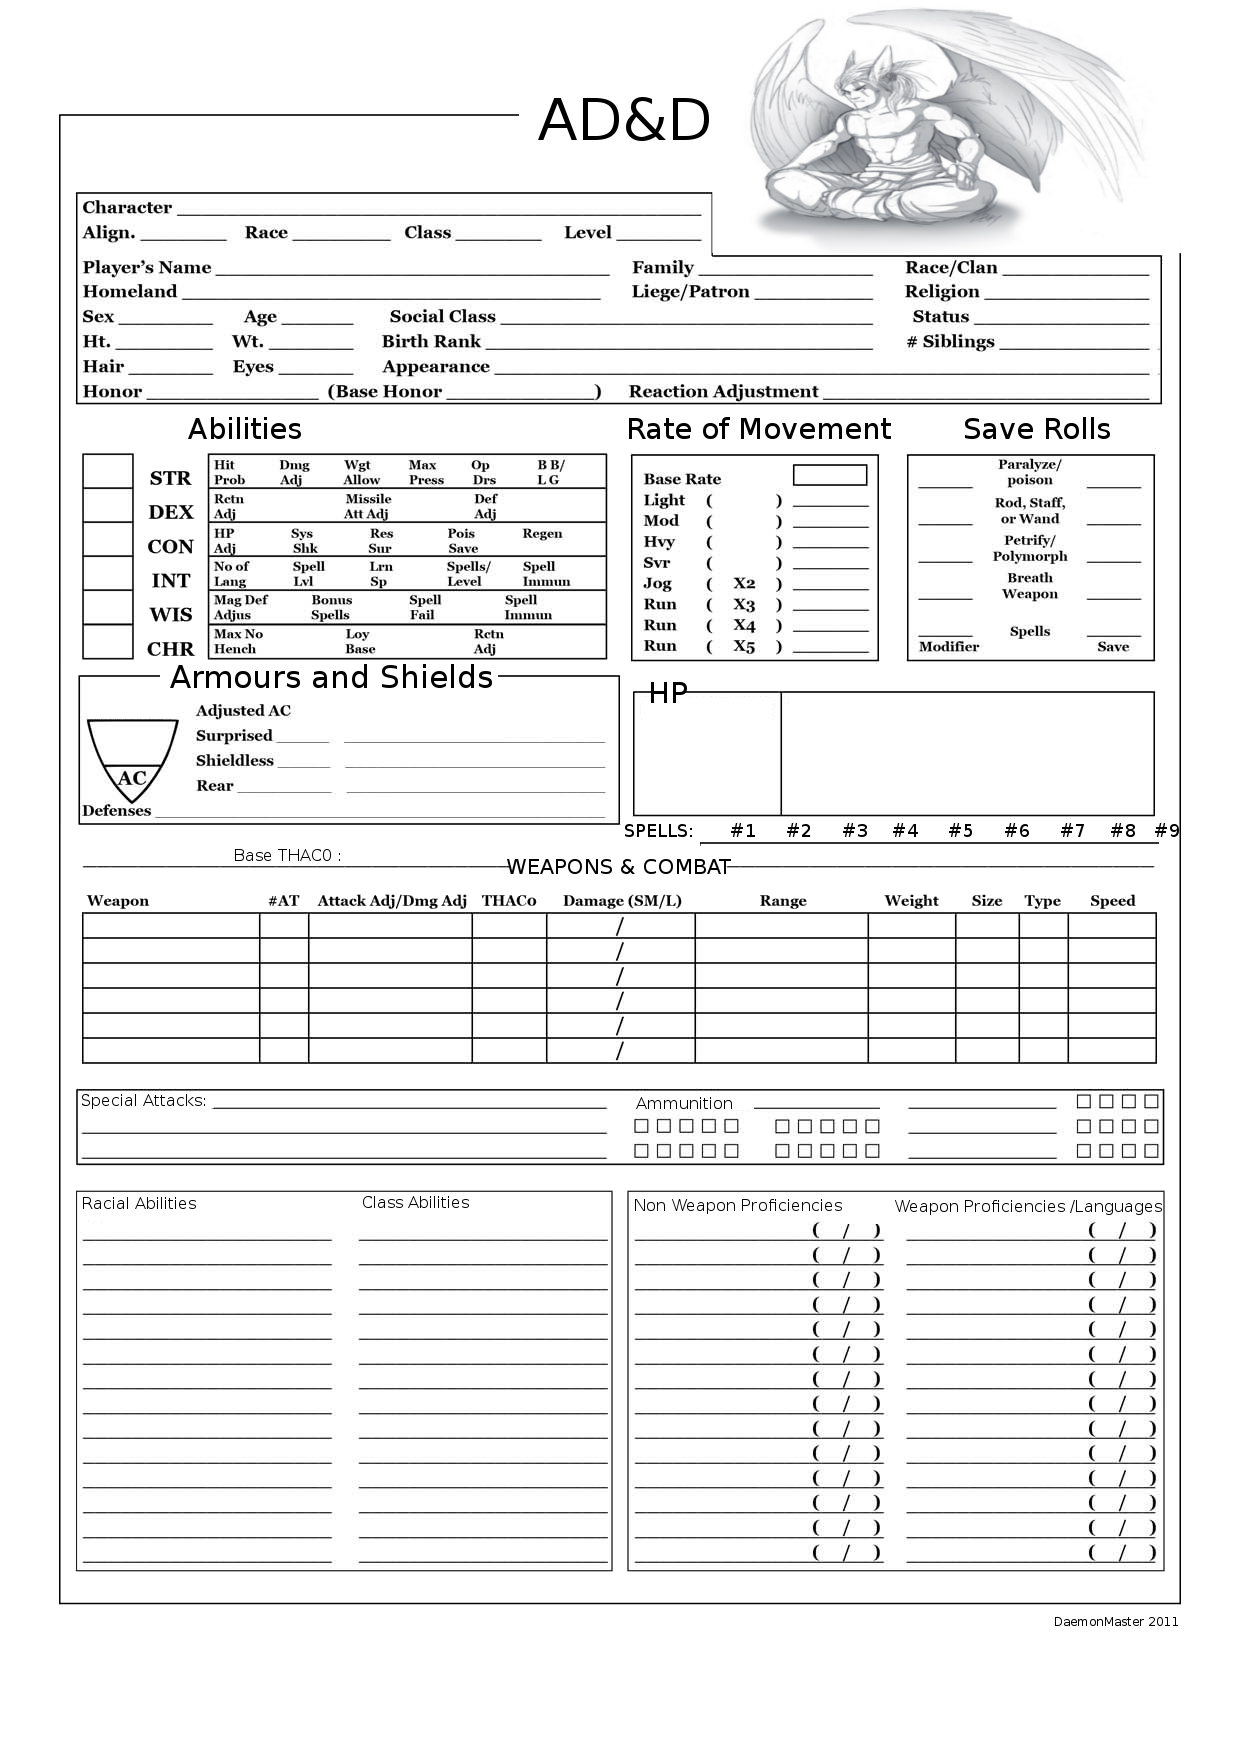 dungeons and dragons character sheets | AD&D Player